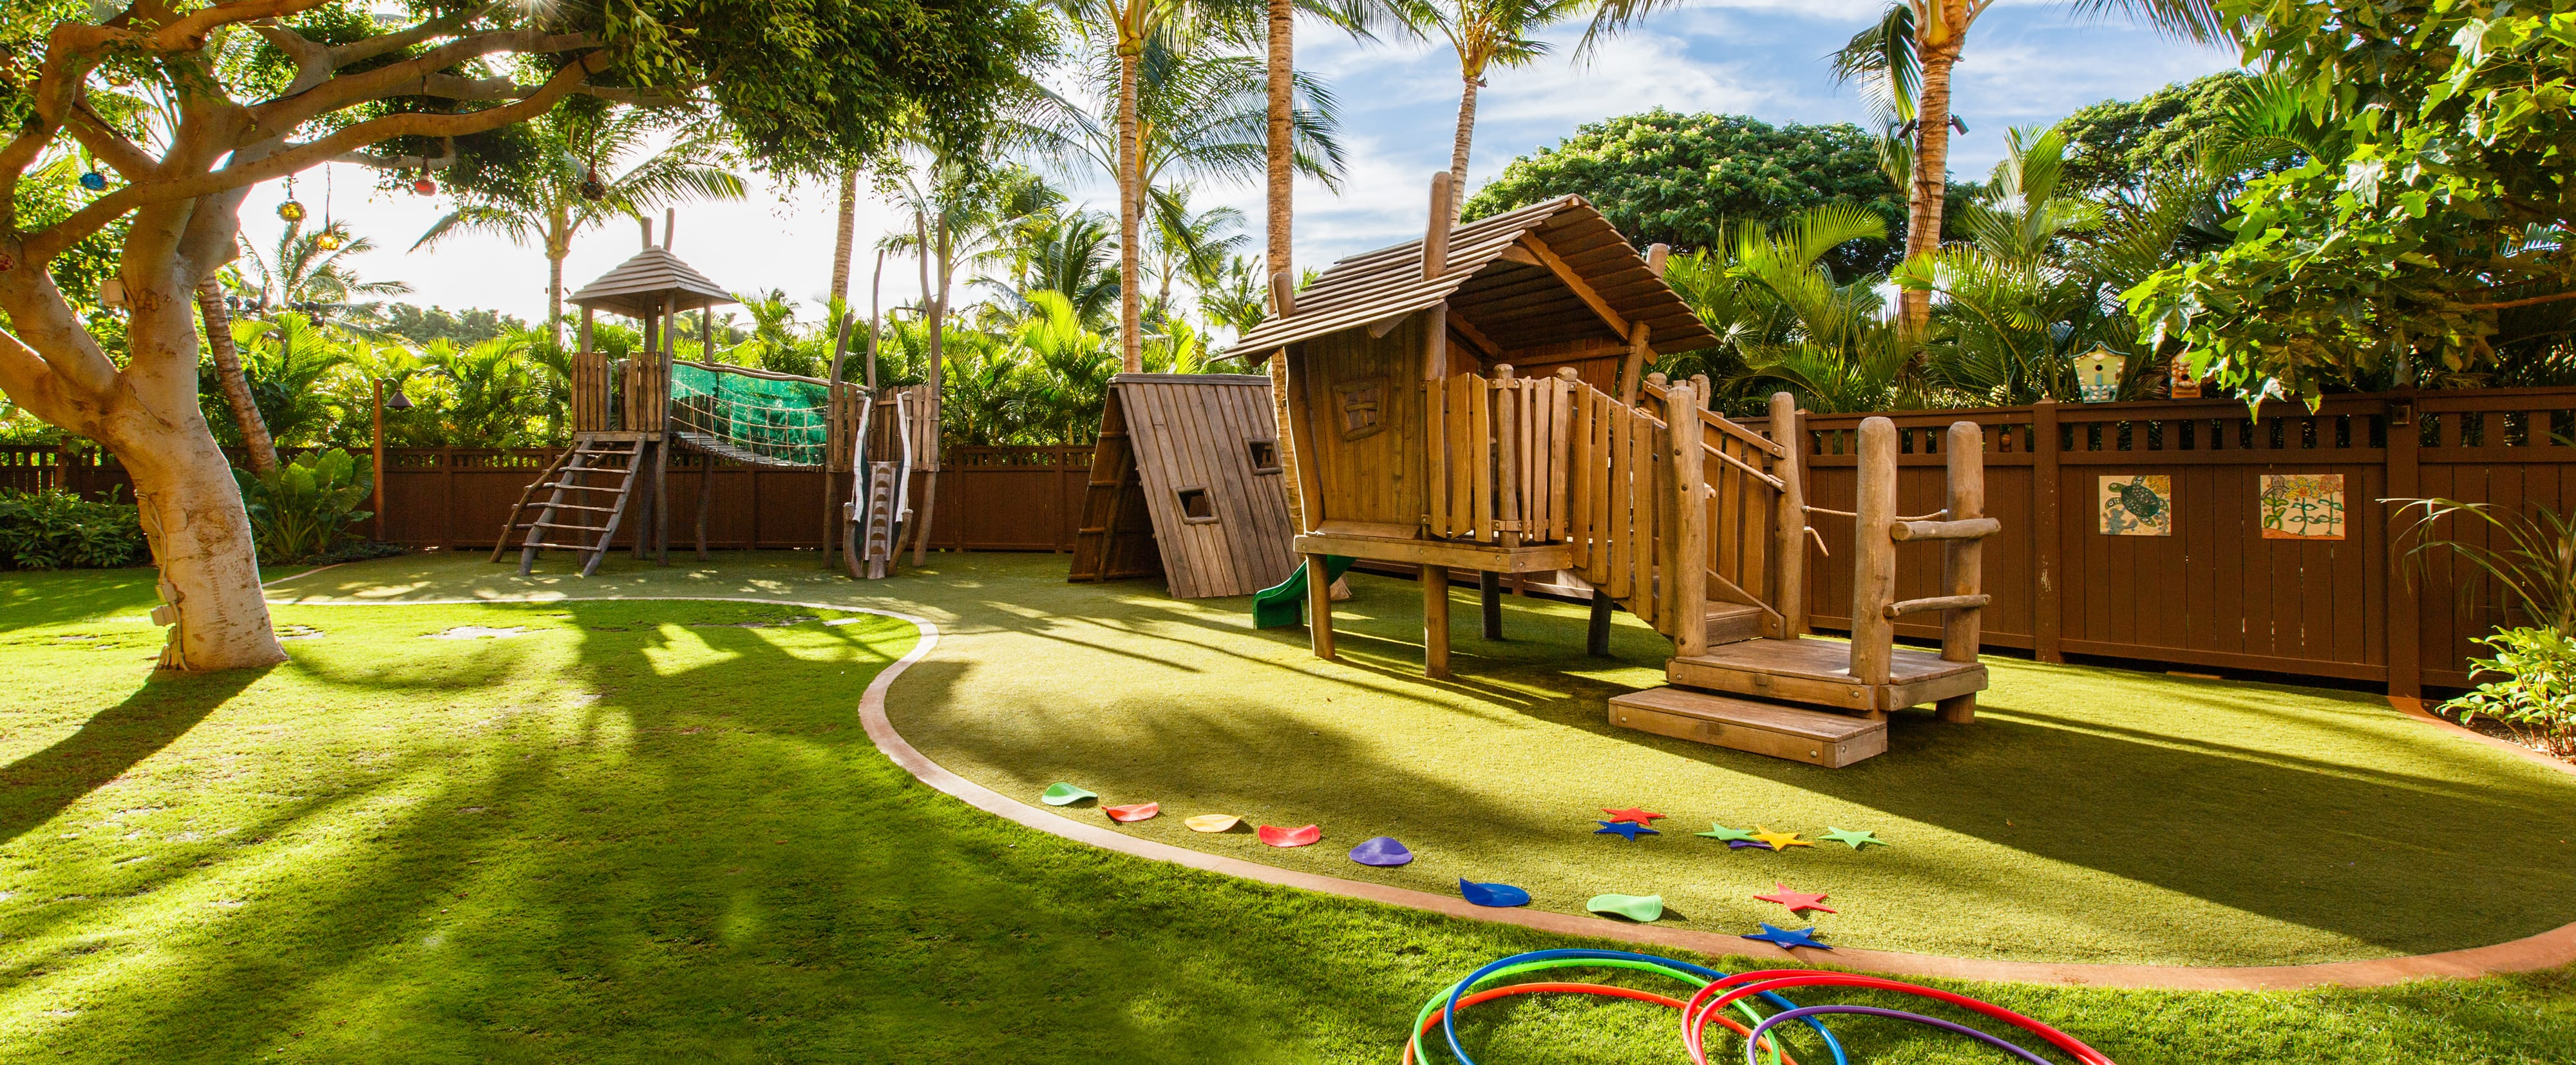 A grassy playground area with 2 wooden climbing structures, a playhouse and hula hoops on the lawn